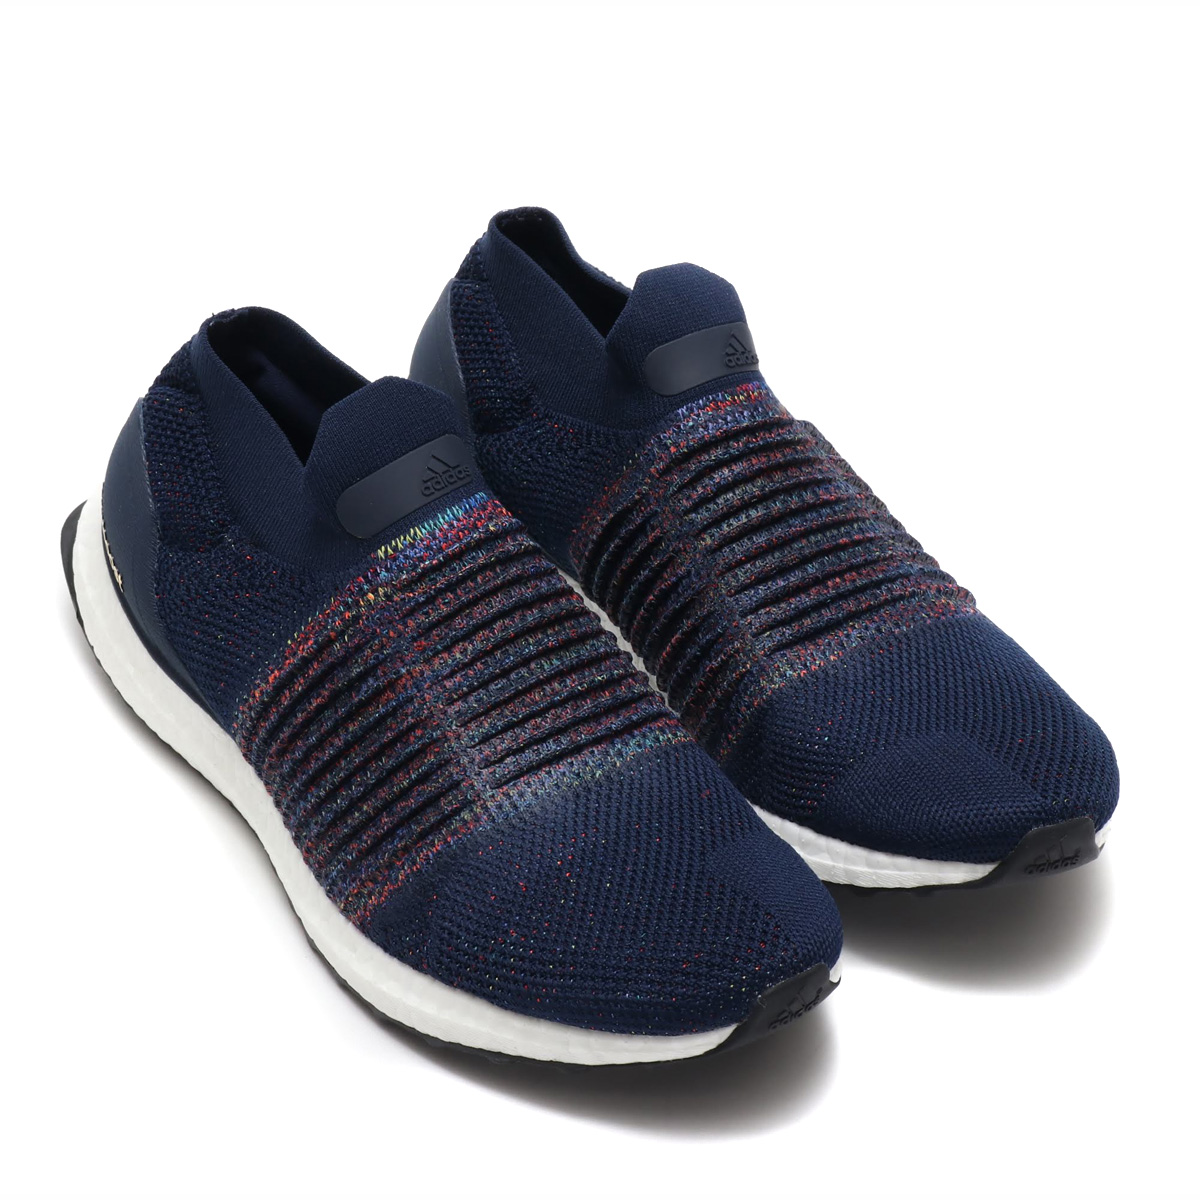 buy online 106ac 263da adidas UltraBOOST LACELESS (Adidas ultra boost race reply) COLLEGE  NAVY/RUNNING WHITE/CORE BLACK 18FW-I